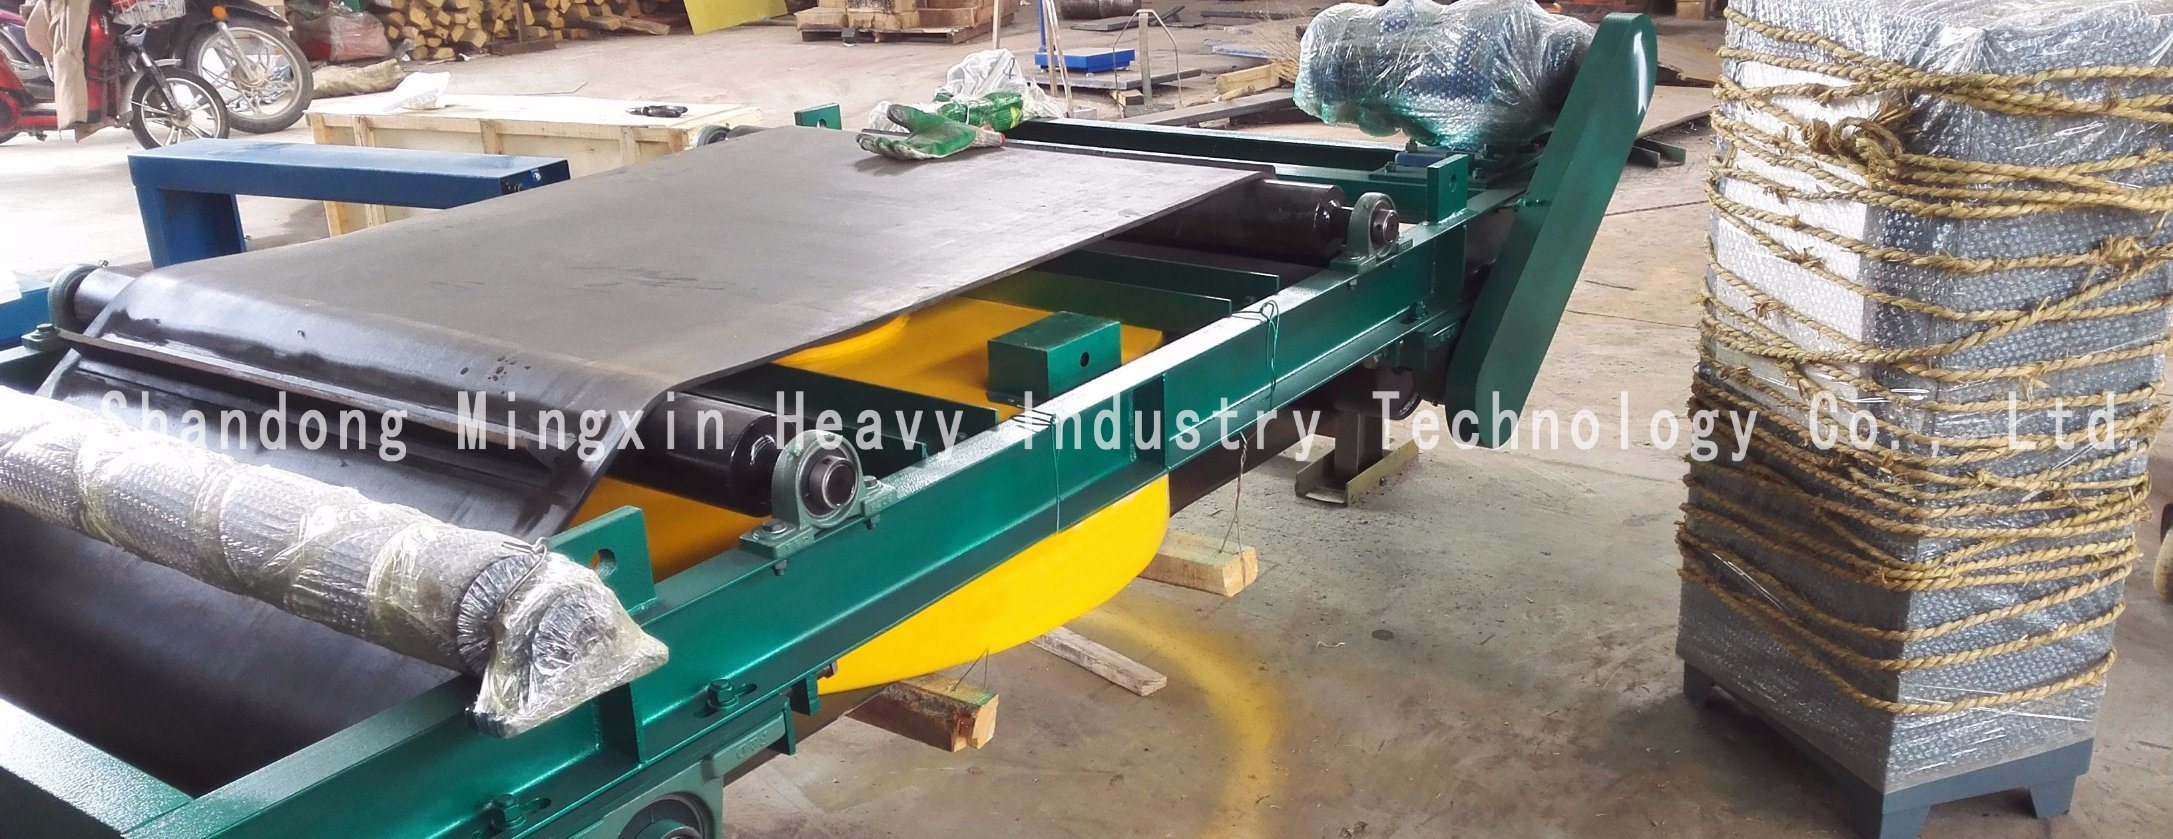 Rcyd (C) - Self Discharging Permanent Magnetic Separator of Mining Machine